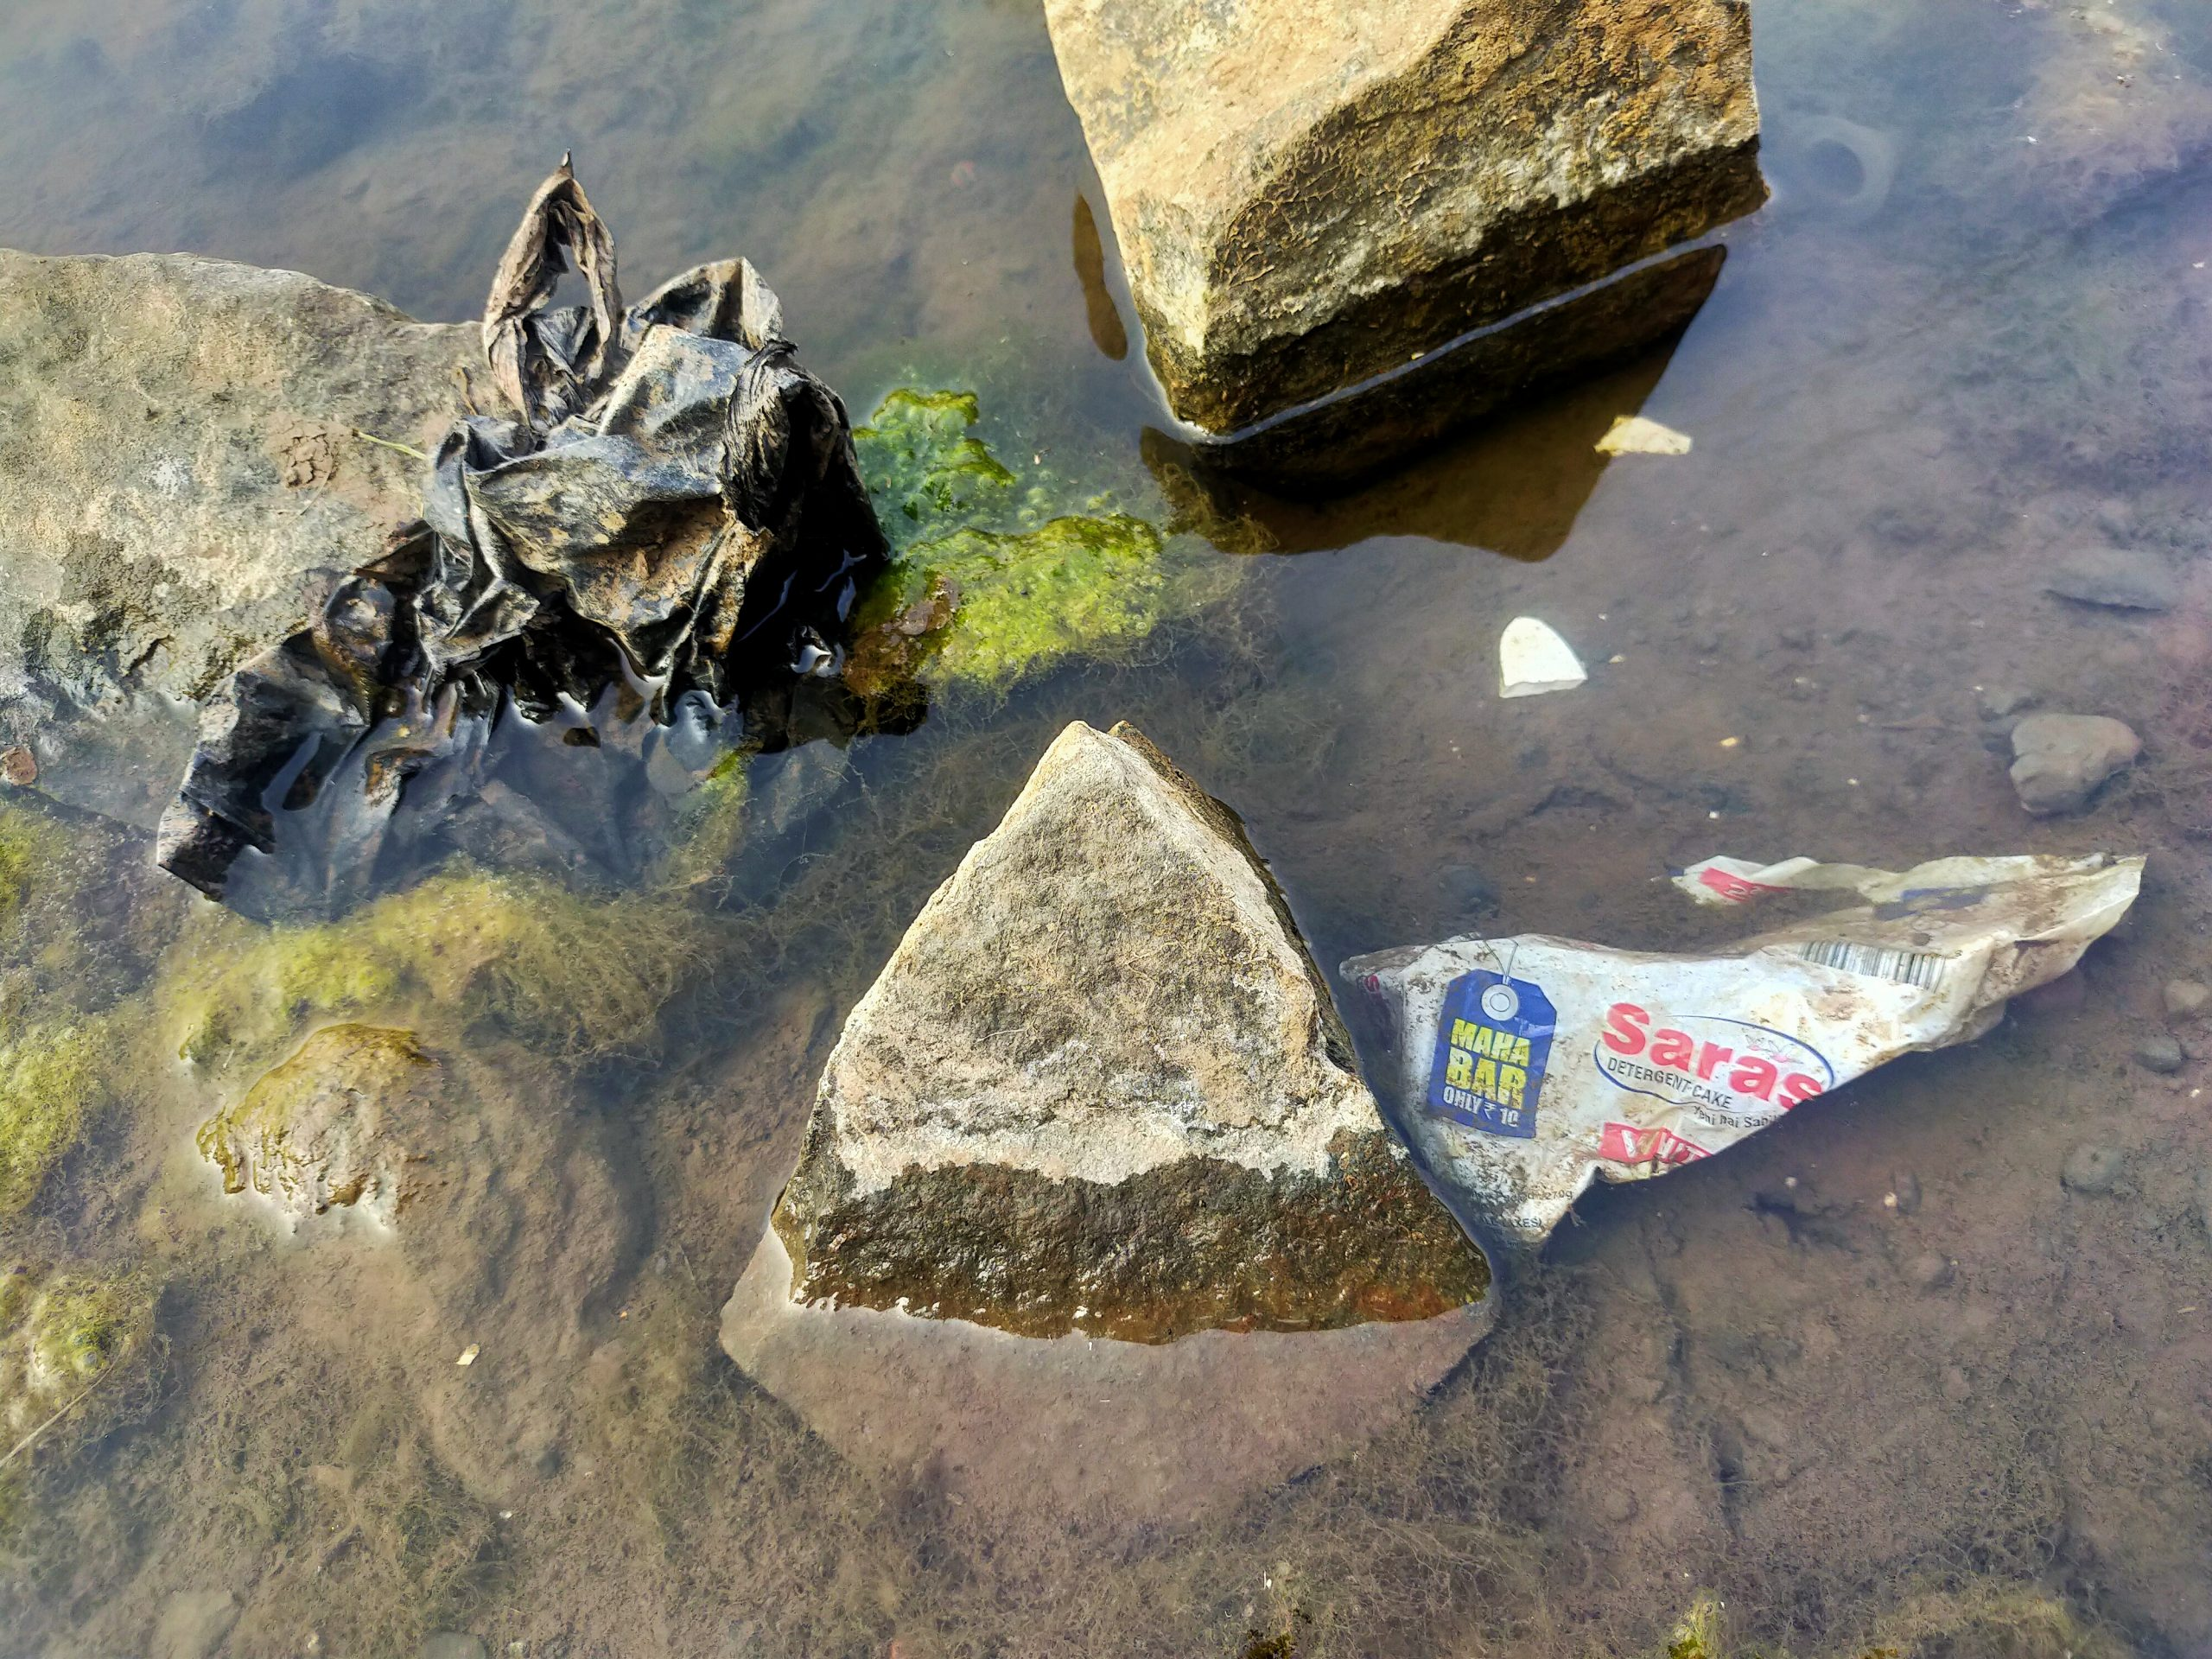 Plastic in the water